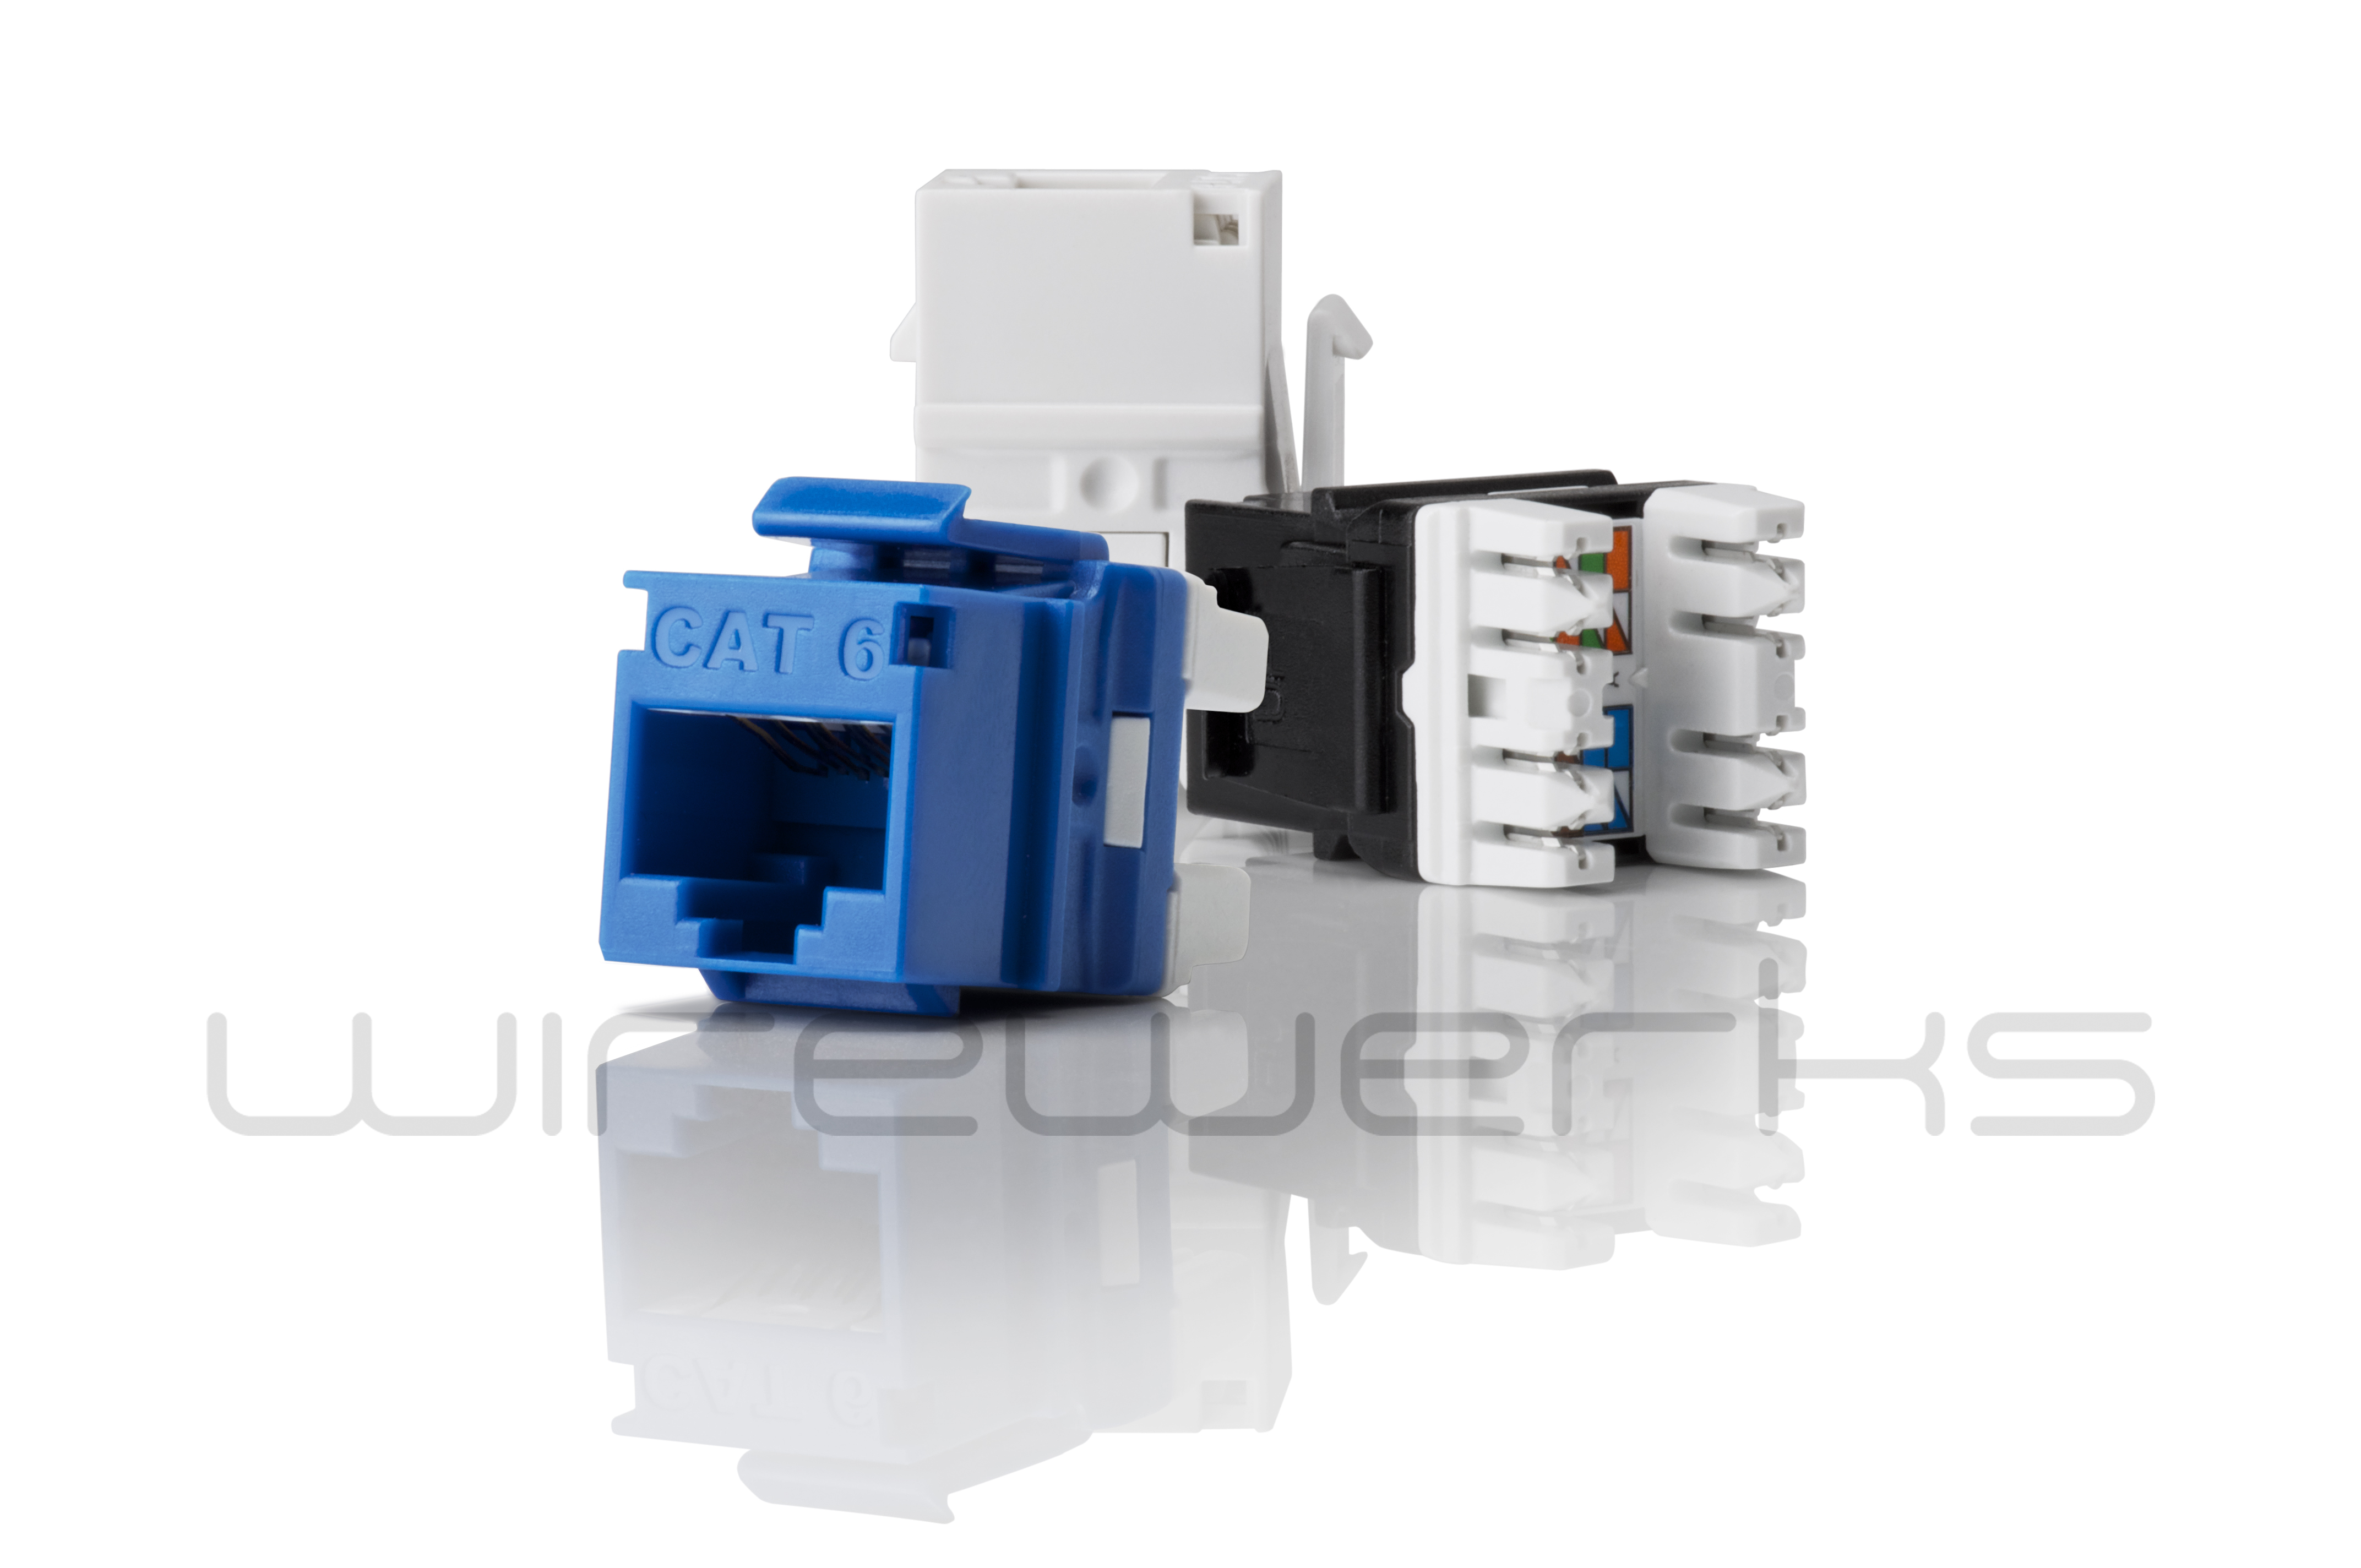 Copper And Fiber Cabling Tbl Telecom Inctbl Inc Advantages Of Structured Wiring Our Specialist Are Trained Qualified With The Latest Technology For Addressing All Installation Follows Rigorously